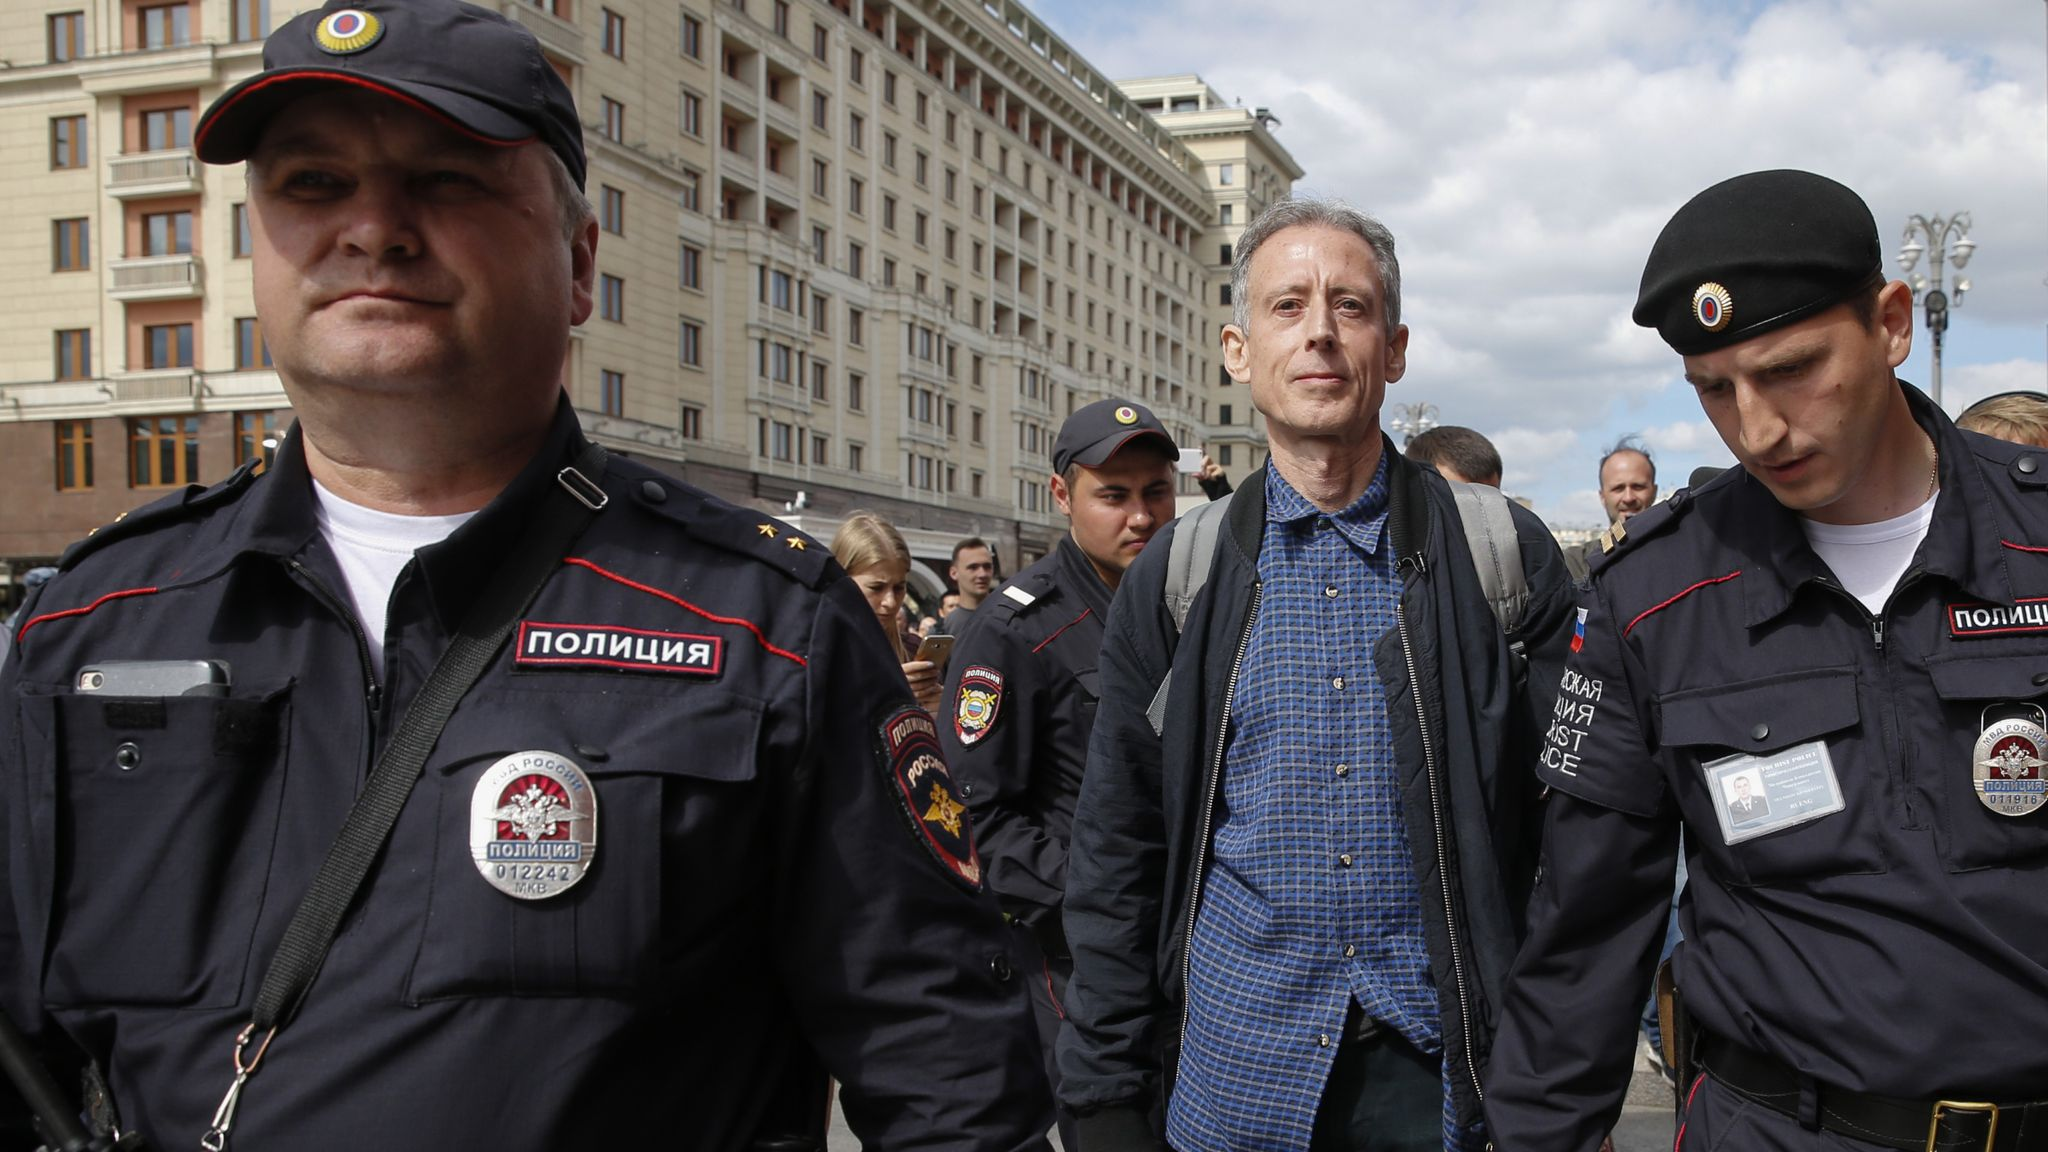 British LGBT campaigner Peter Tatchell detained by Russian police | World  News | Sky News